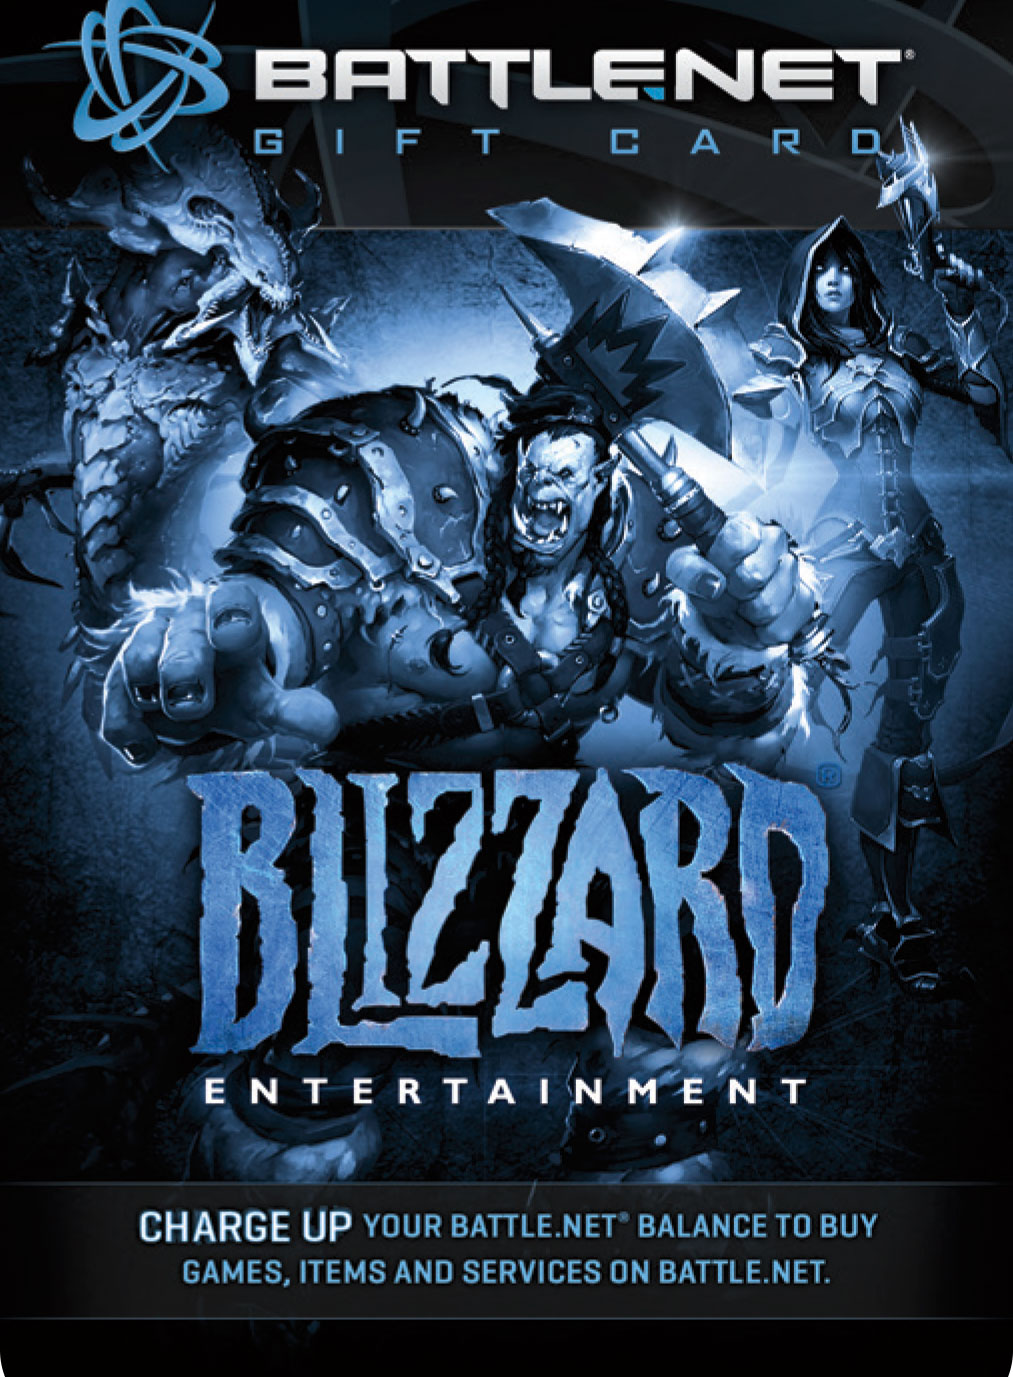 $20 Battle.net Store Gift Card Balance - Blizzard Entertainment [Digital Code] [Online Game - Buy Online Us